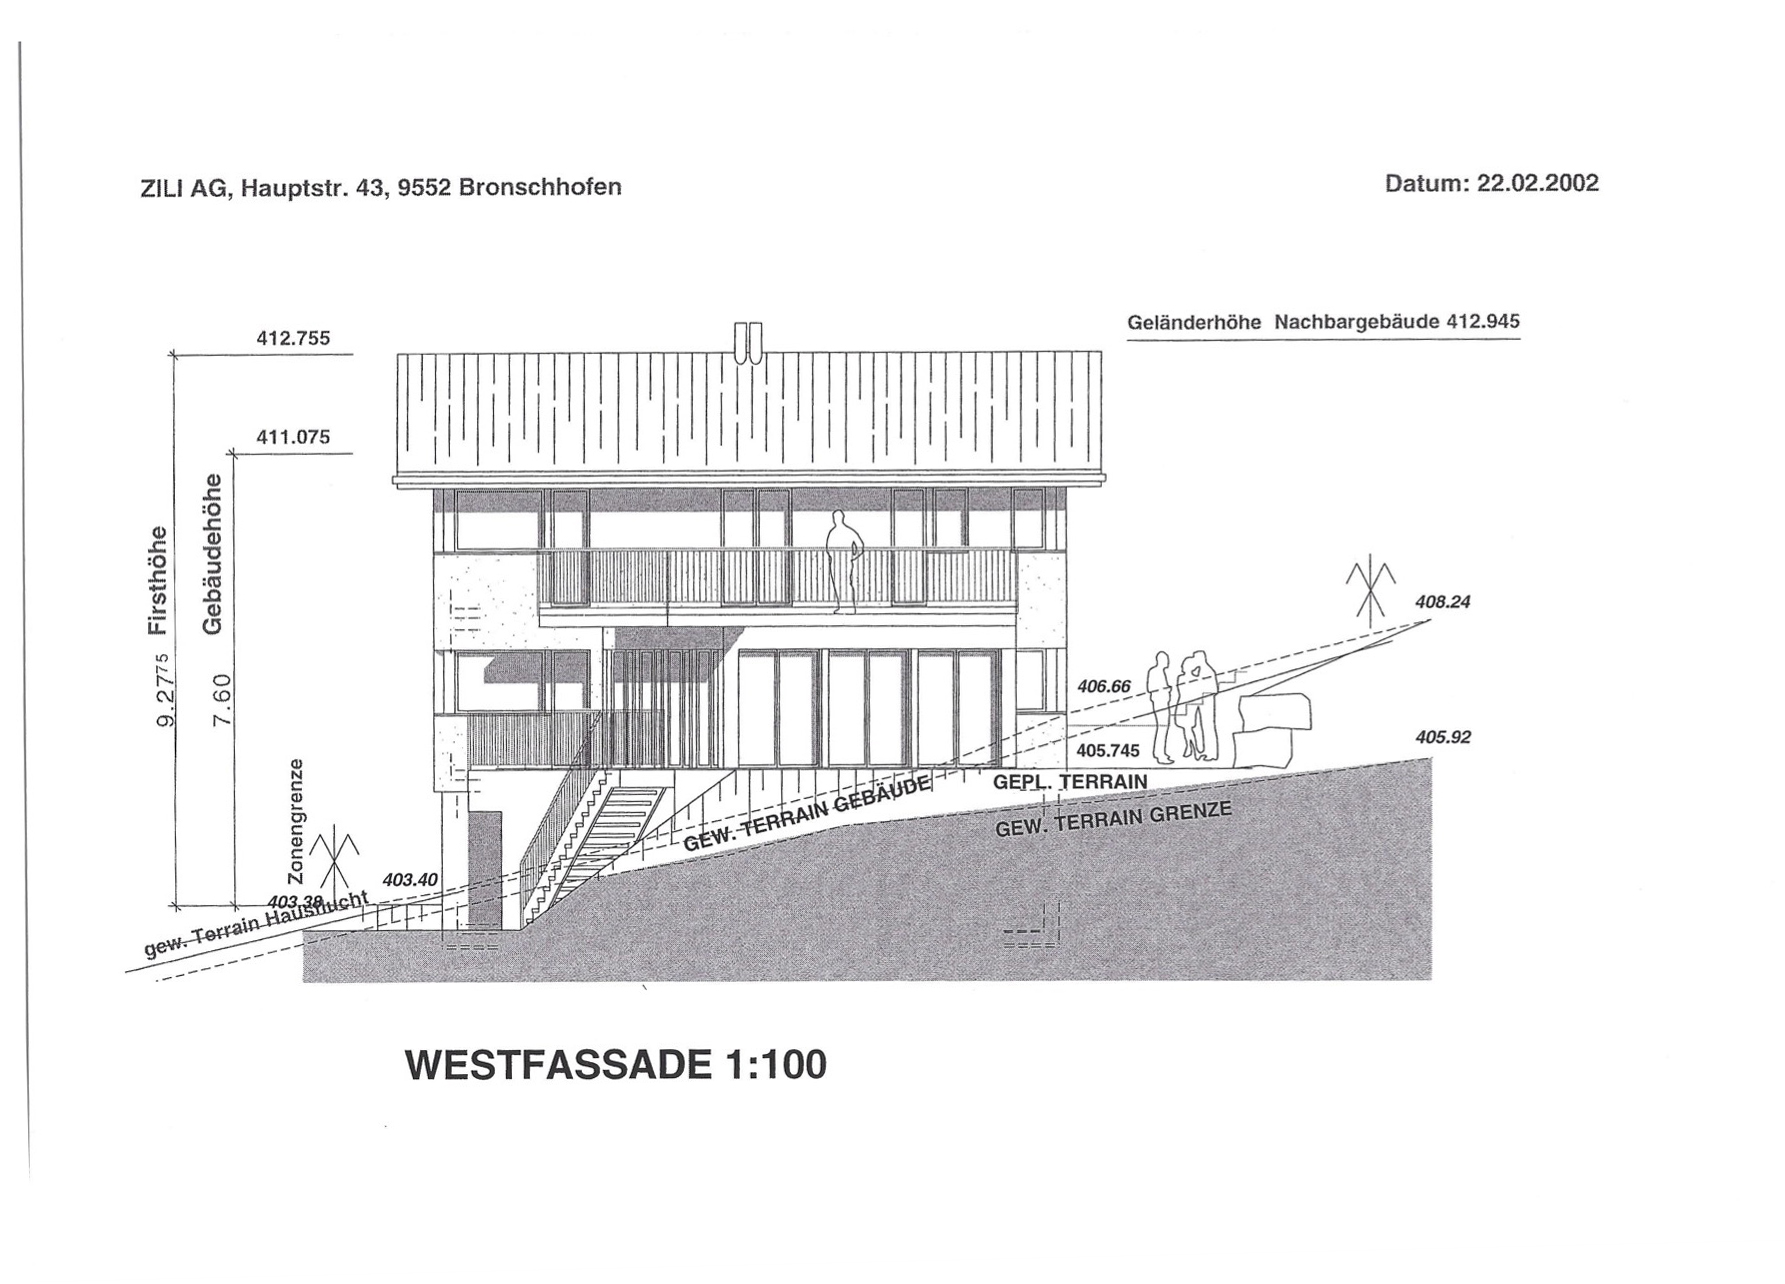 West-Fassade